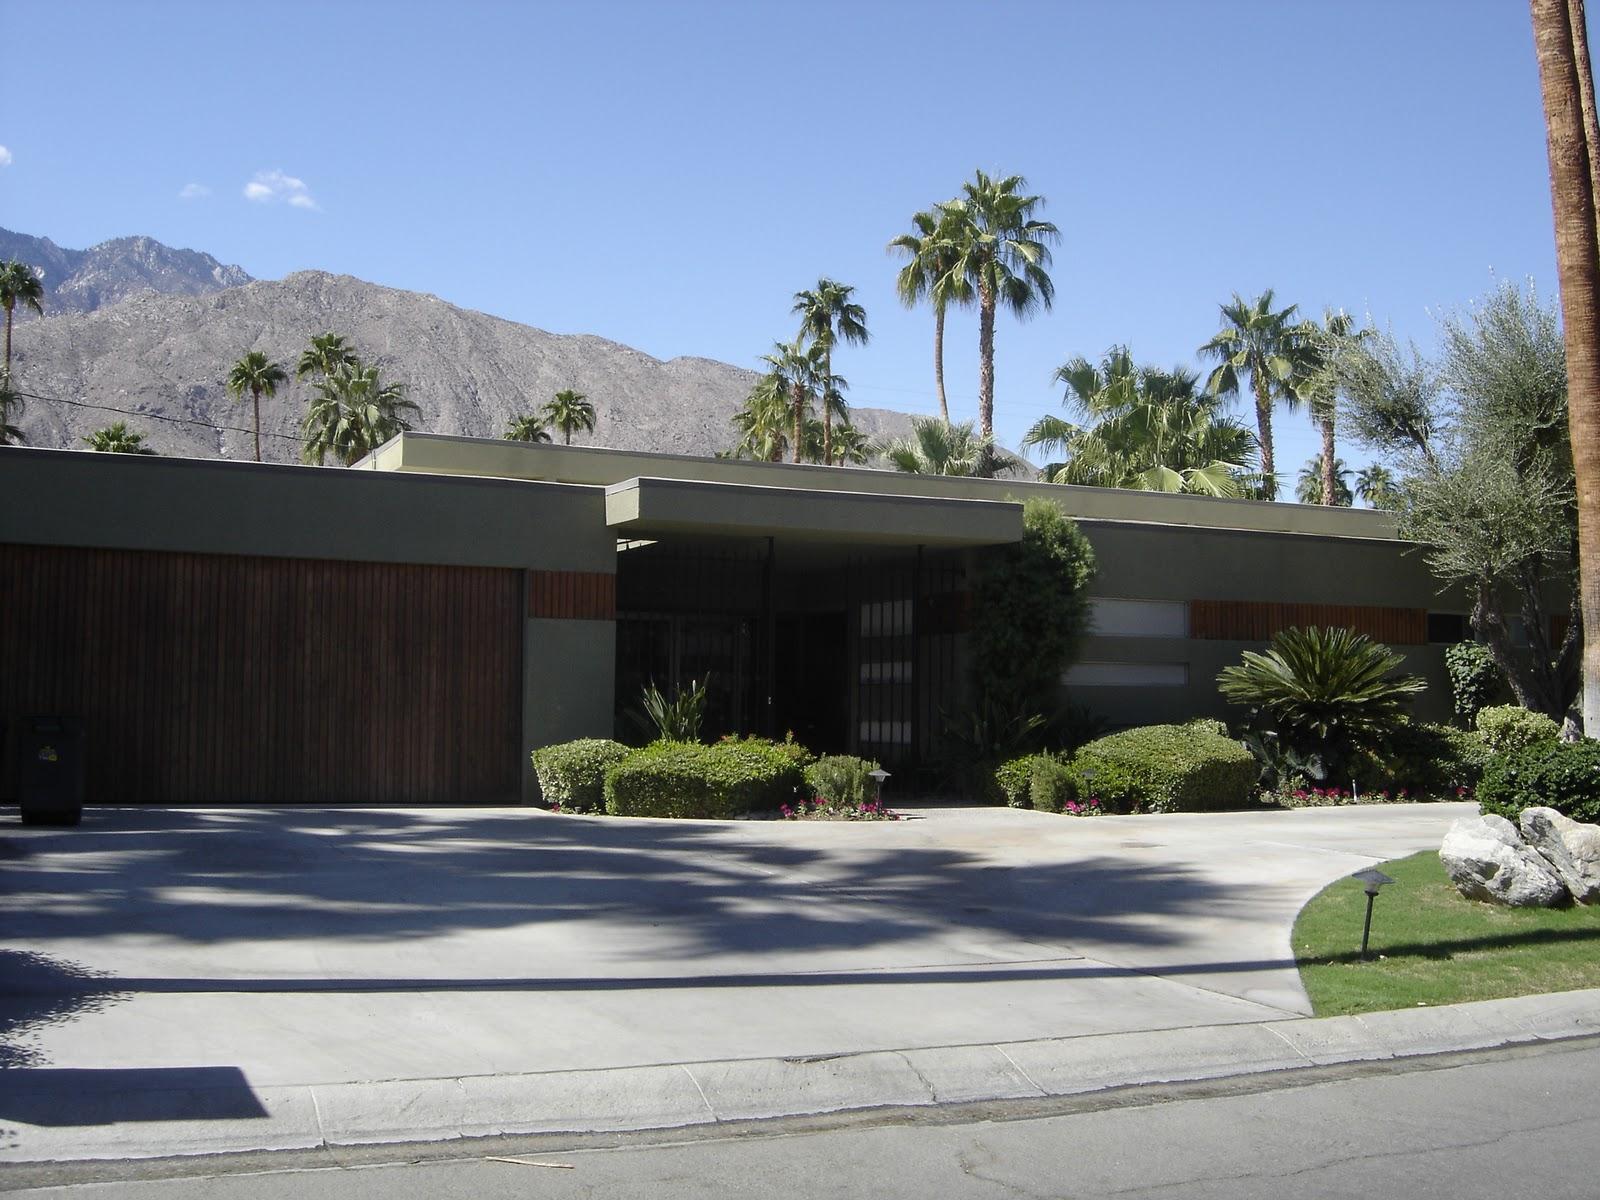 Places to go buildings to see mid century homes palm for New mid century modern homes palm springs